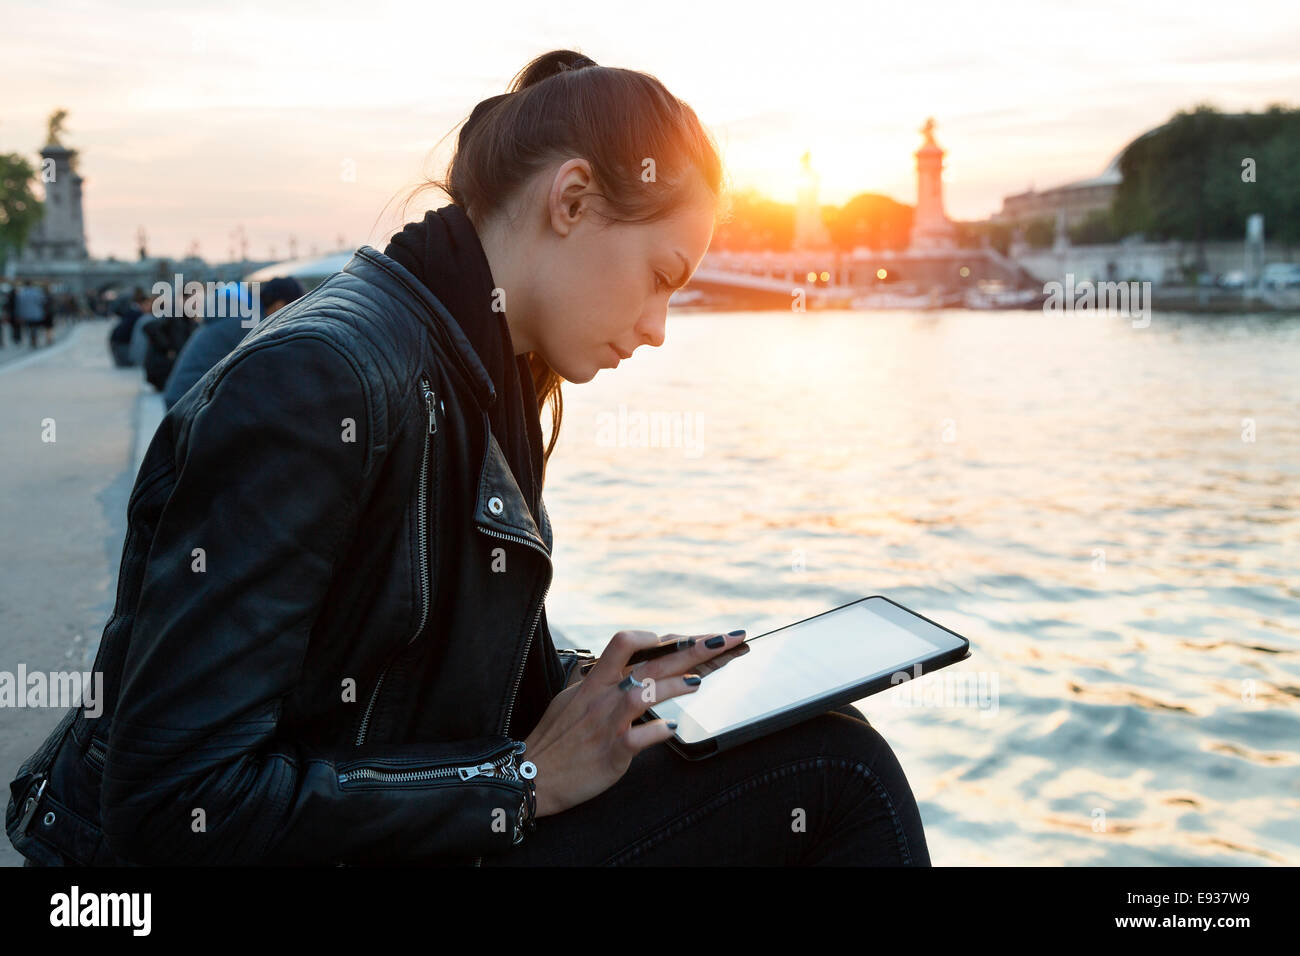 Woman using Digital Tablet - Stock Image